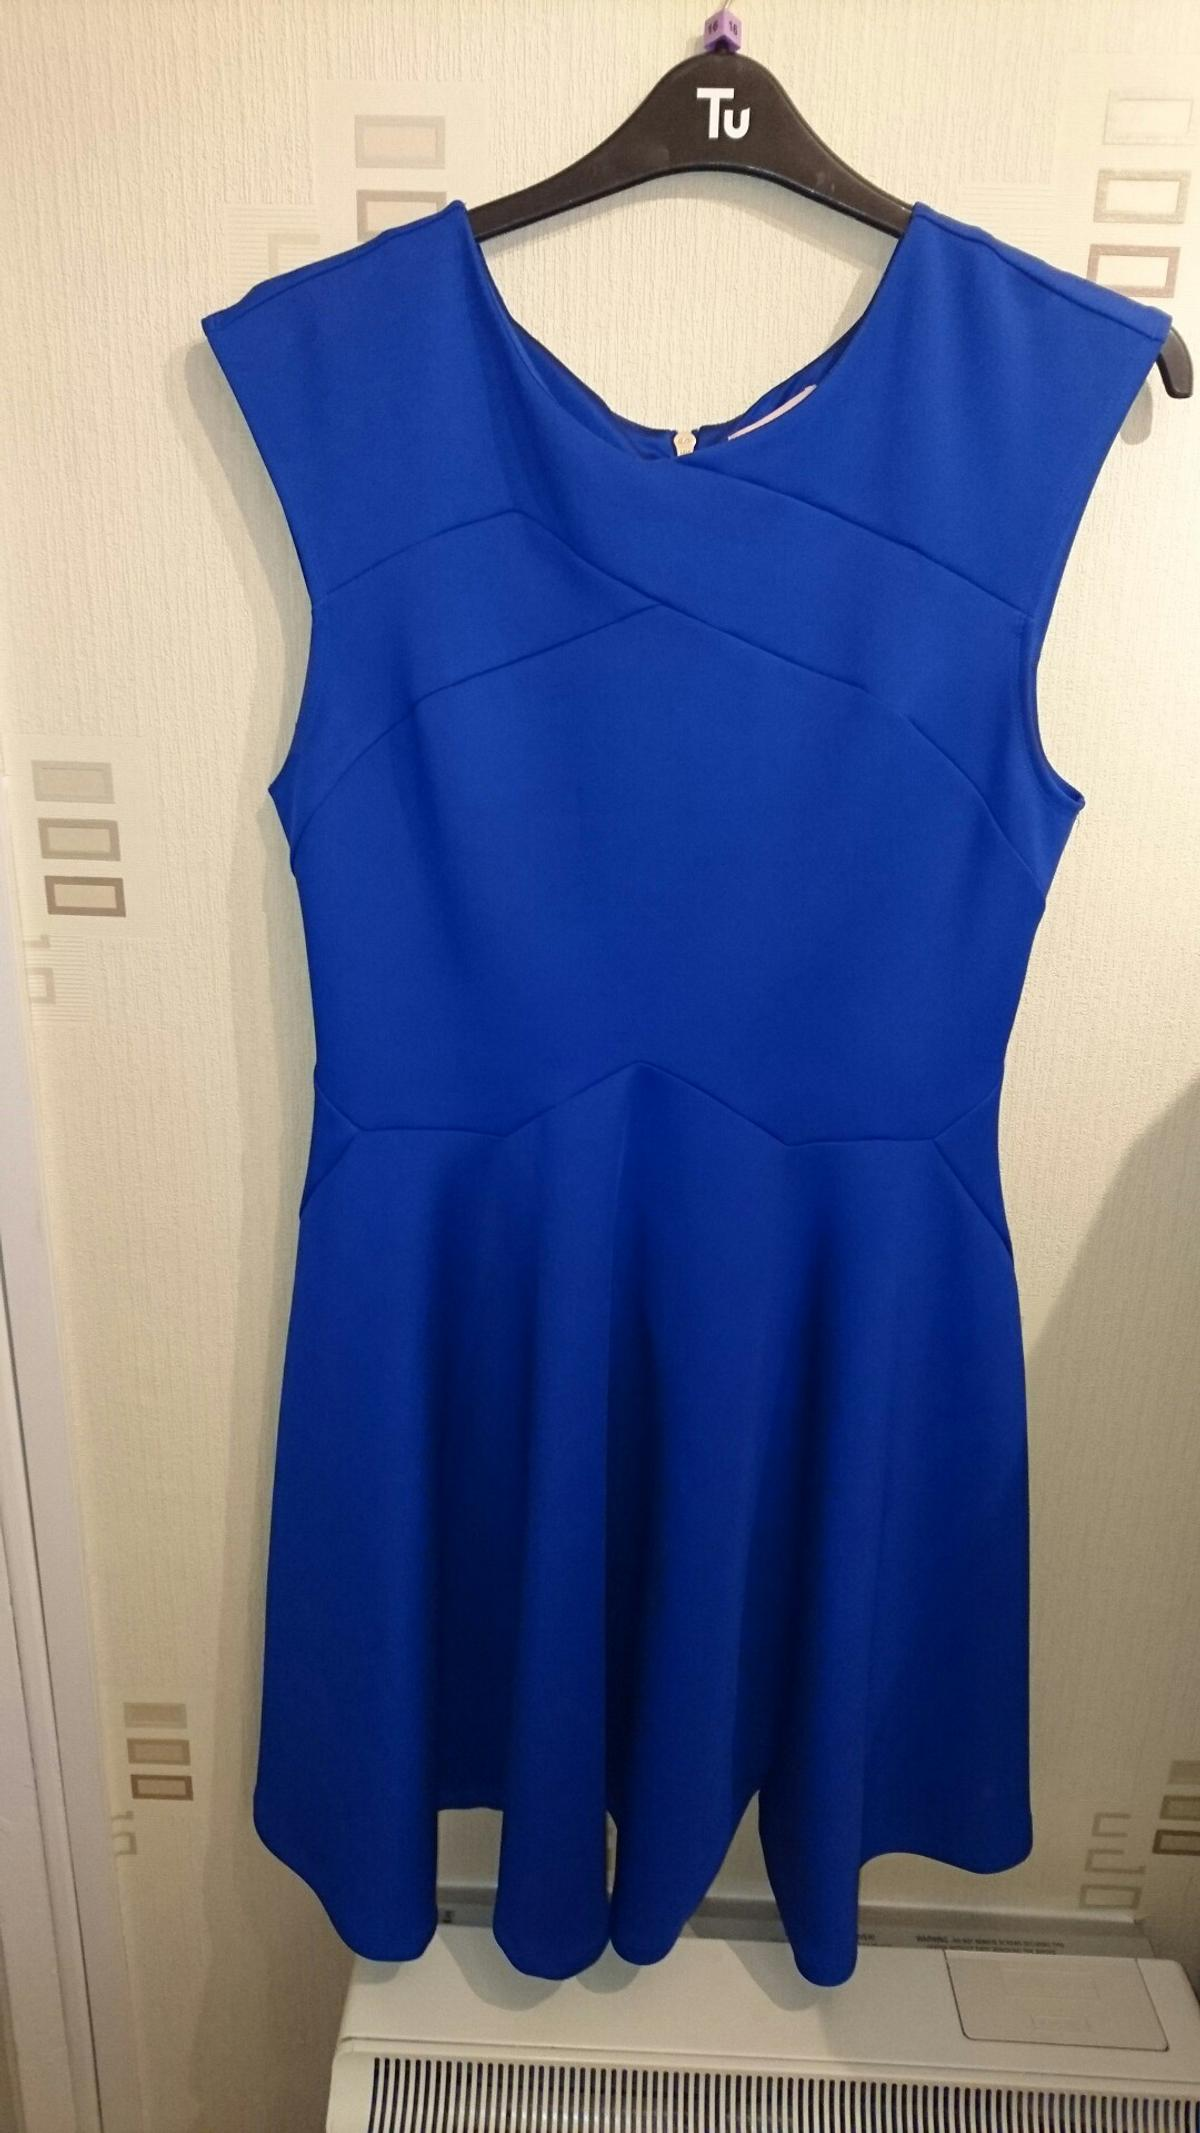 5b59115b0 Ted Baker blue dress in CH65 Port for £10.00 for sale - Shpock